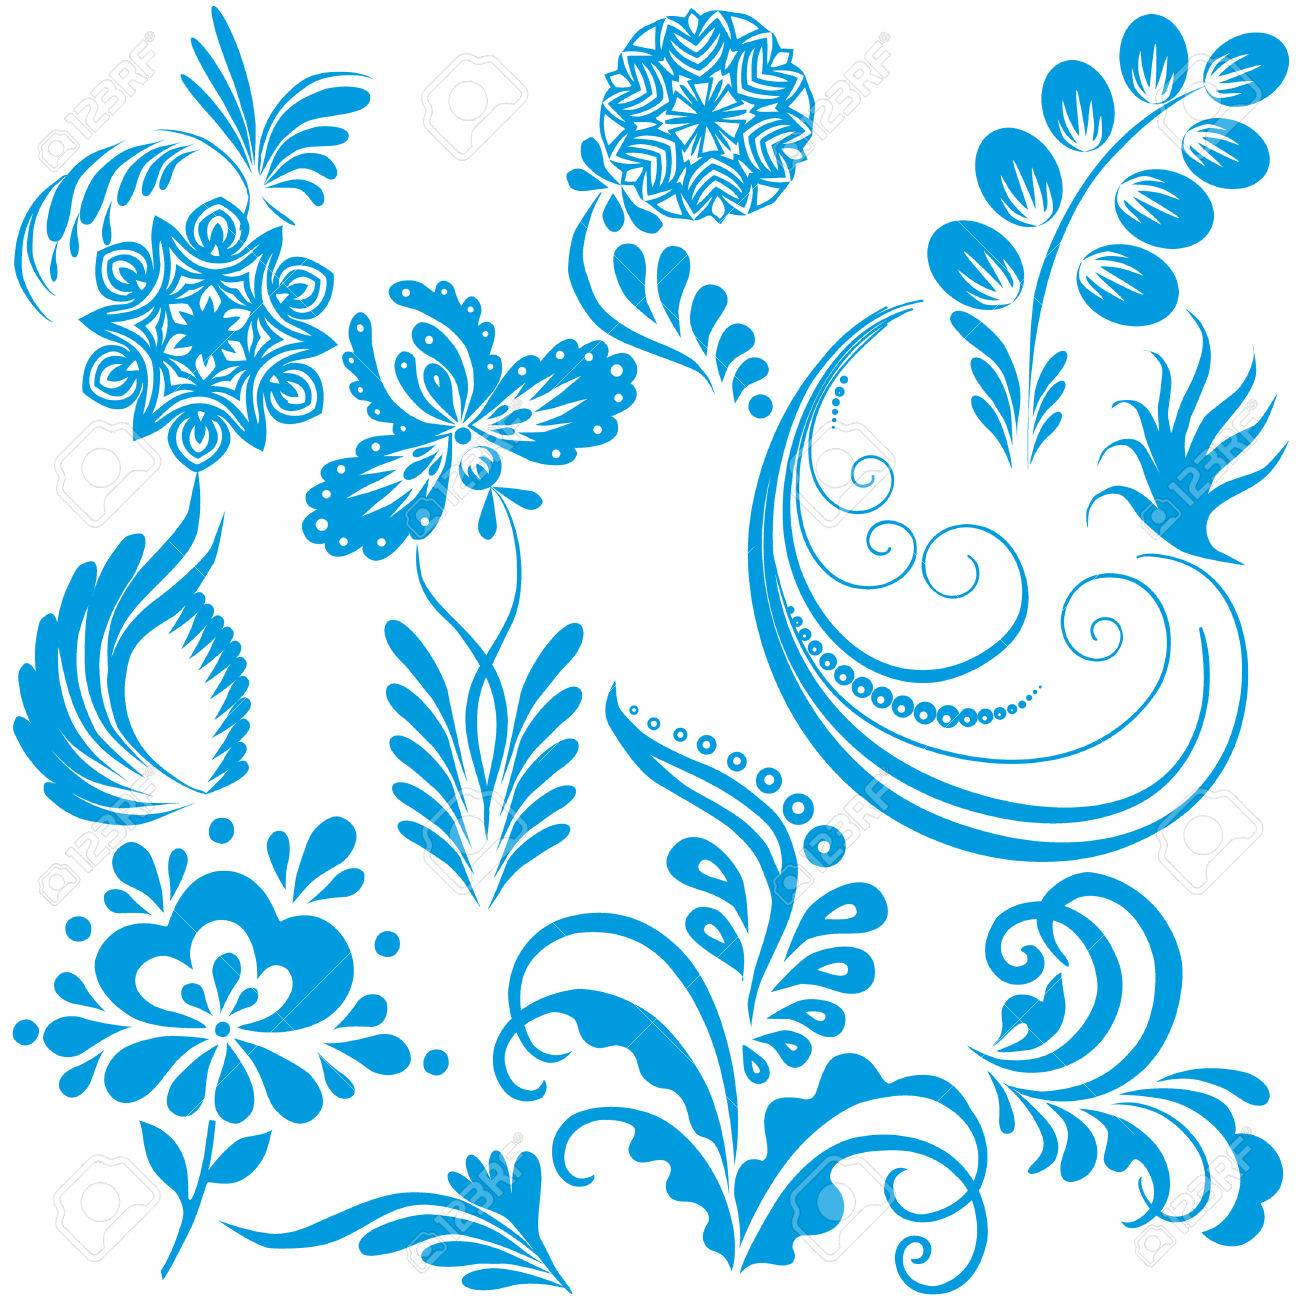 Vector design elements for Christmas and New Year on a white background. Stock Vector - 8512018